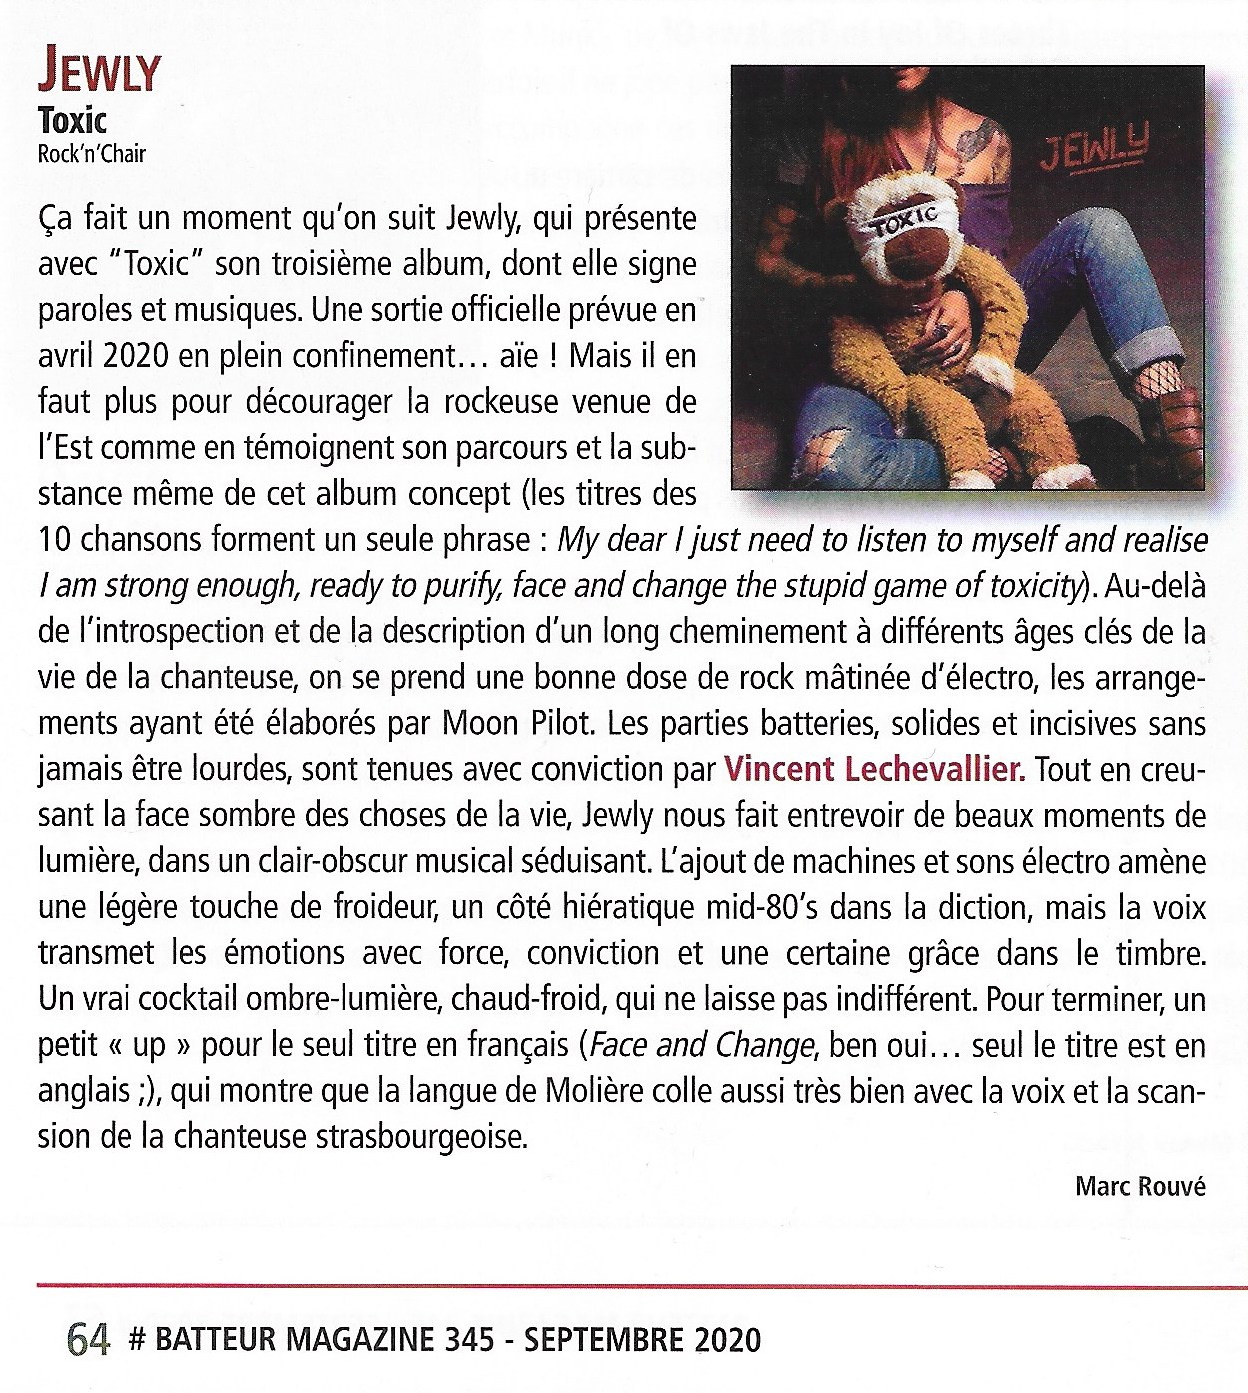 Batteur Magazine - Septembre 2020